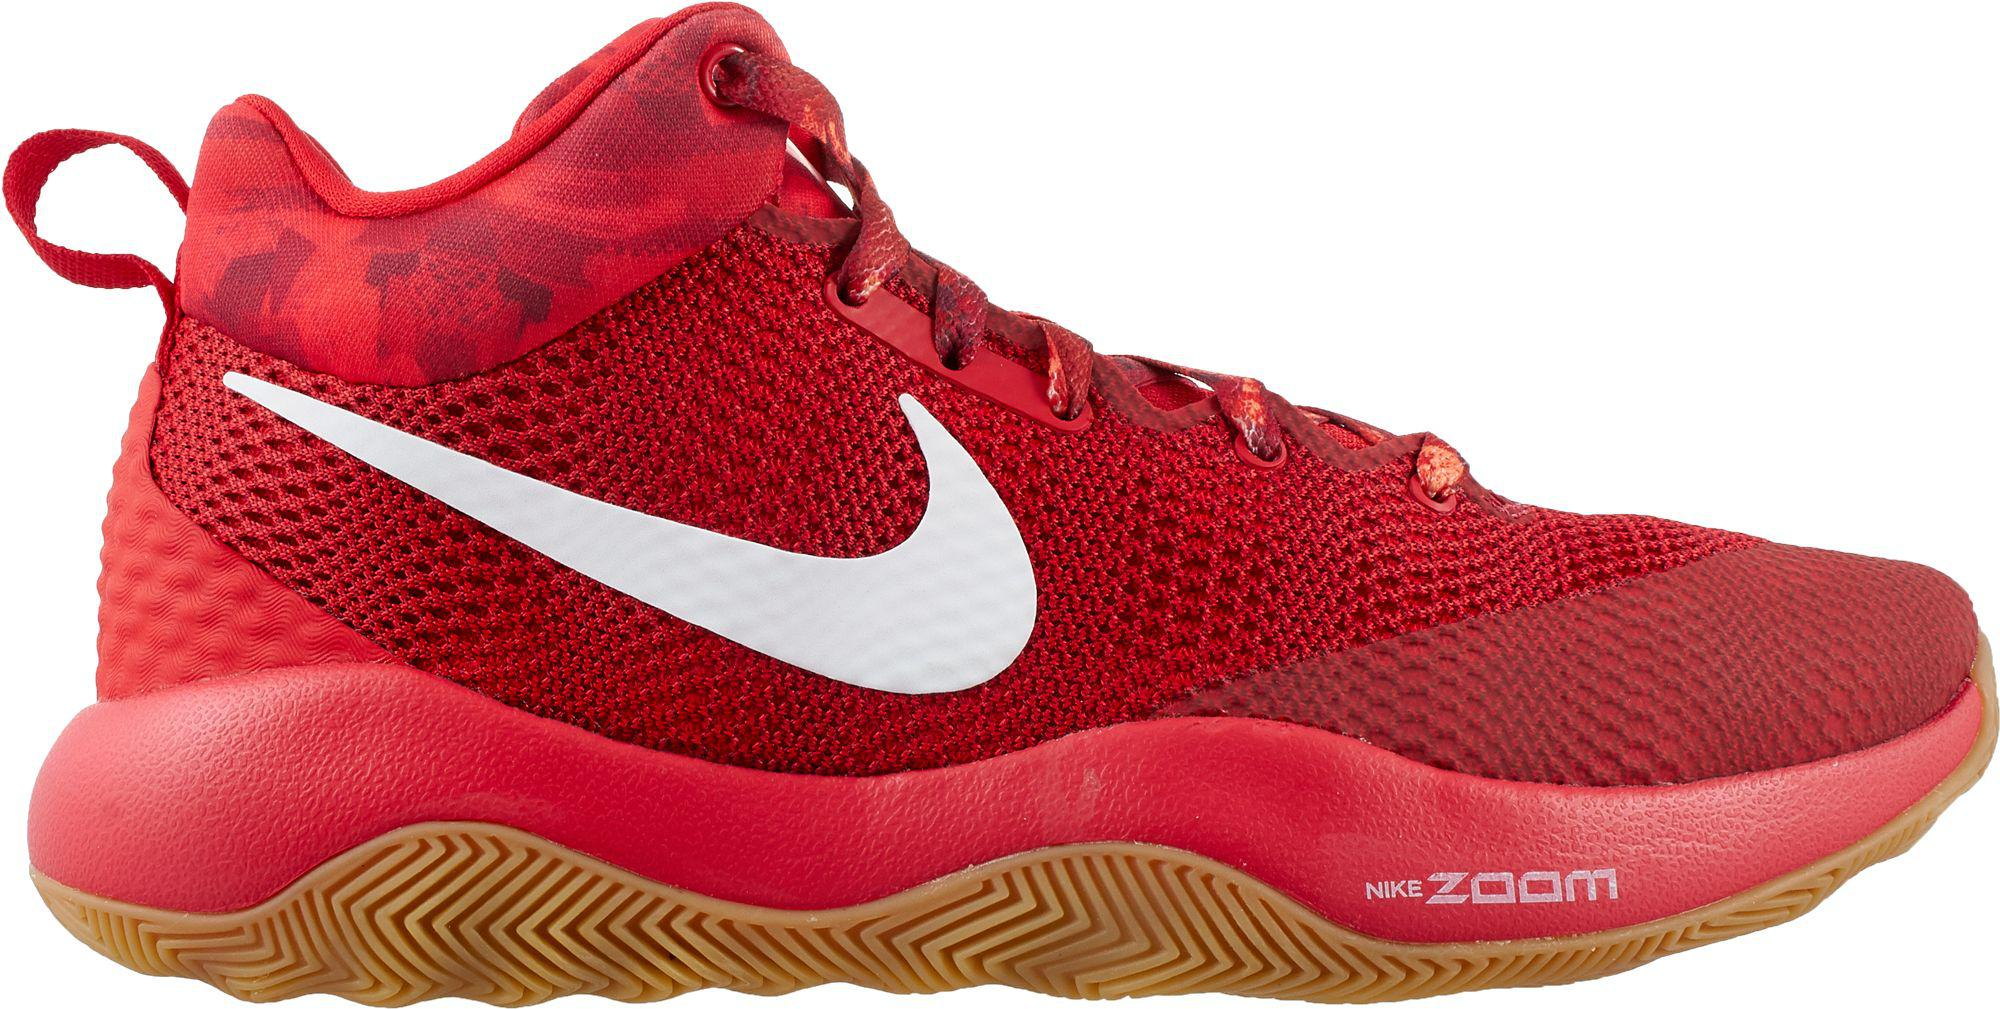 best service ba849 c15ec Nike Zoom Rev 2017 Basketball Shoes in Red for Men - Lyst